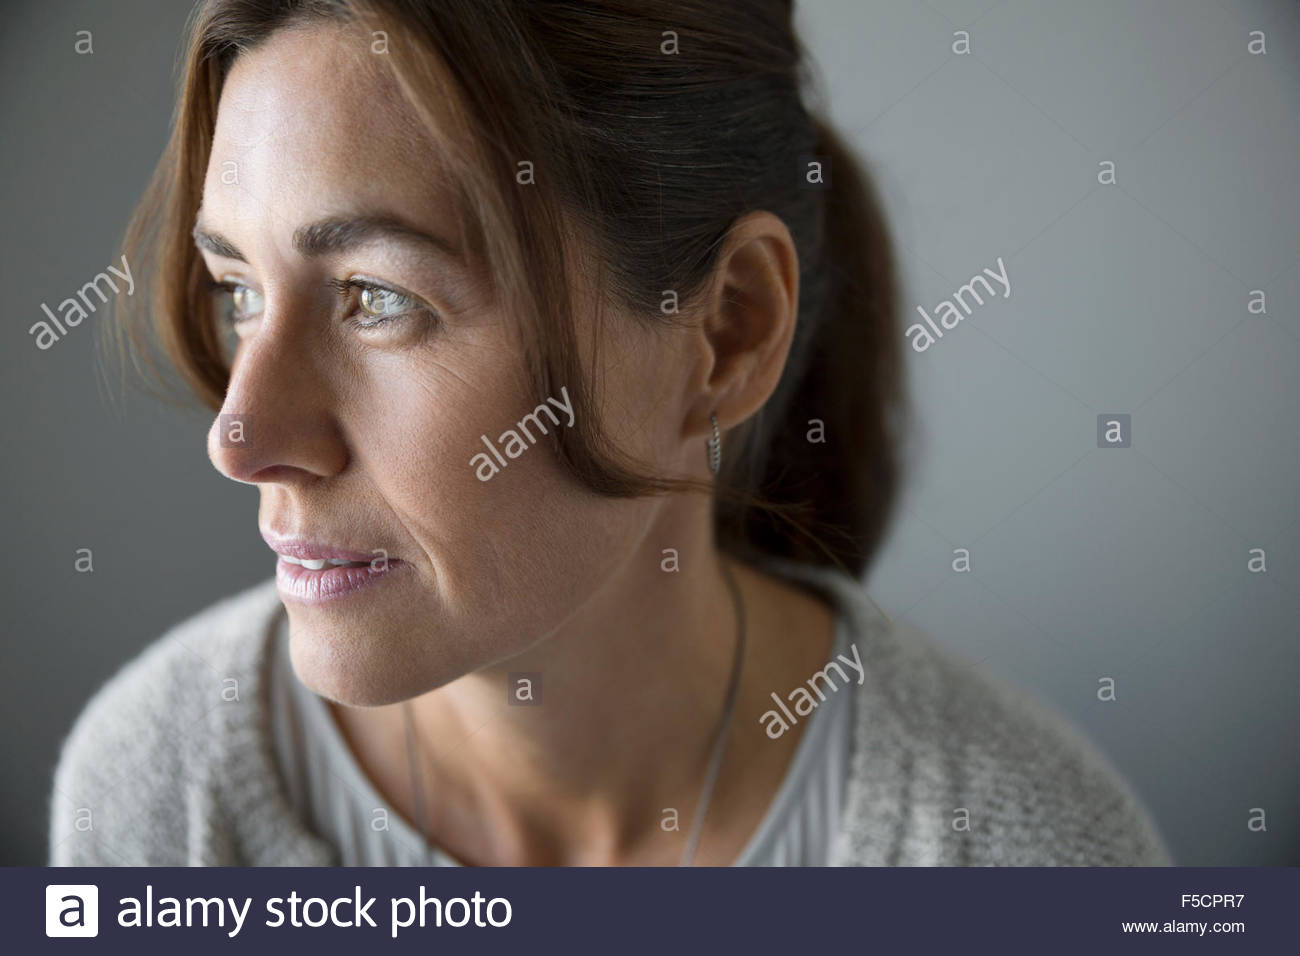 Close up pensive brunette woman looking away Photo Stock